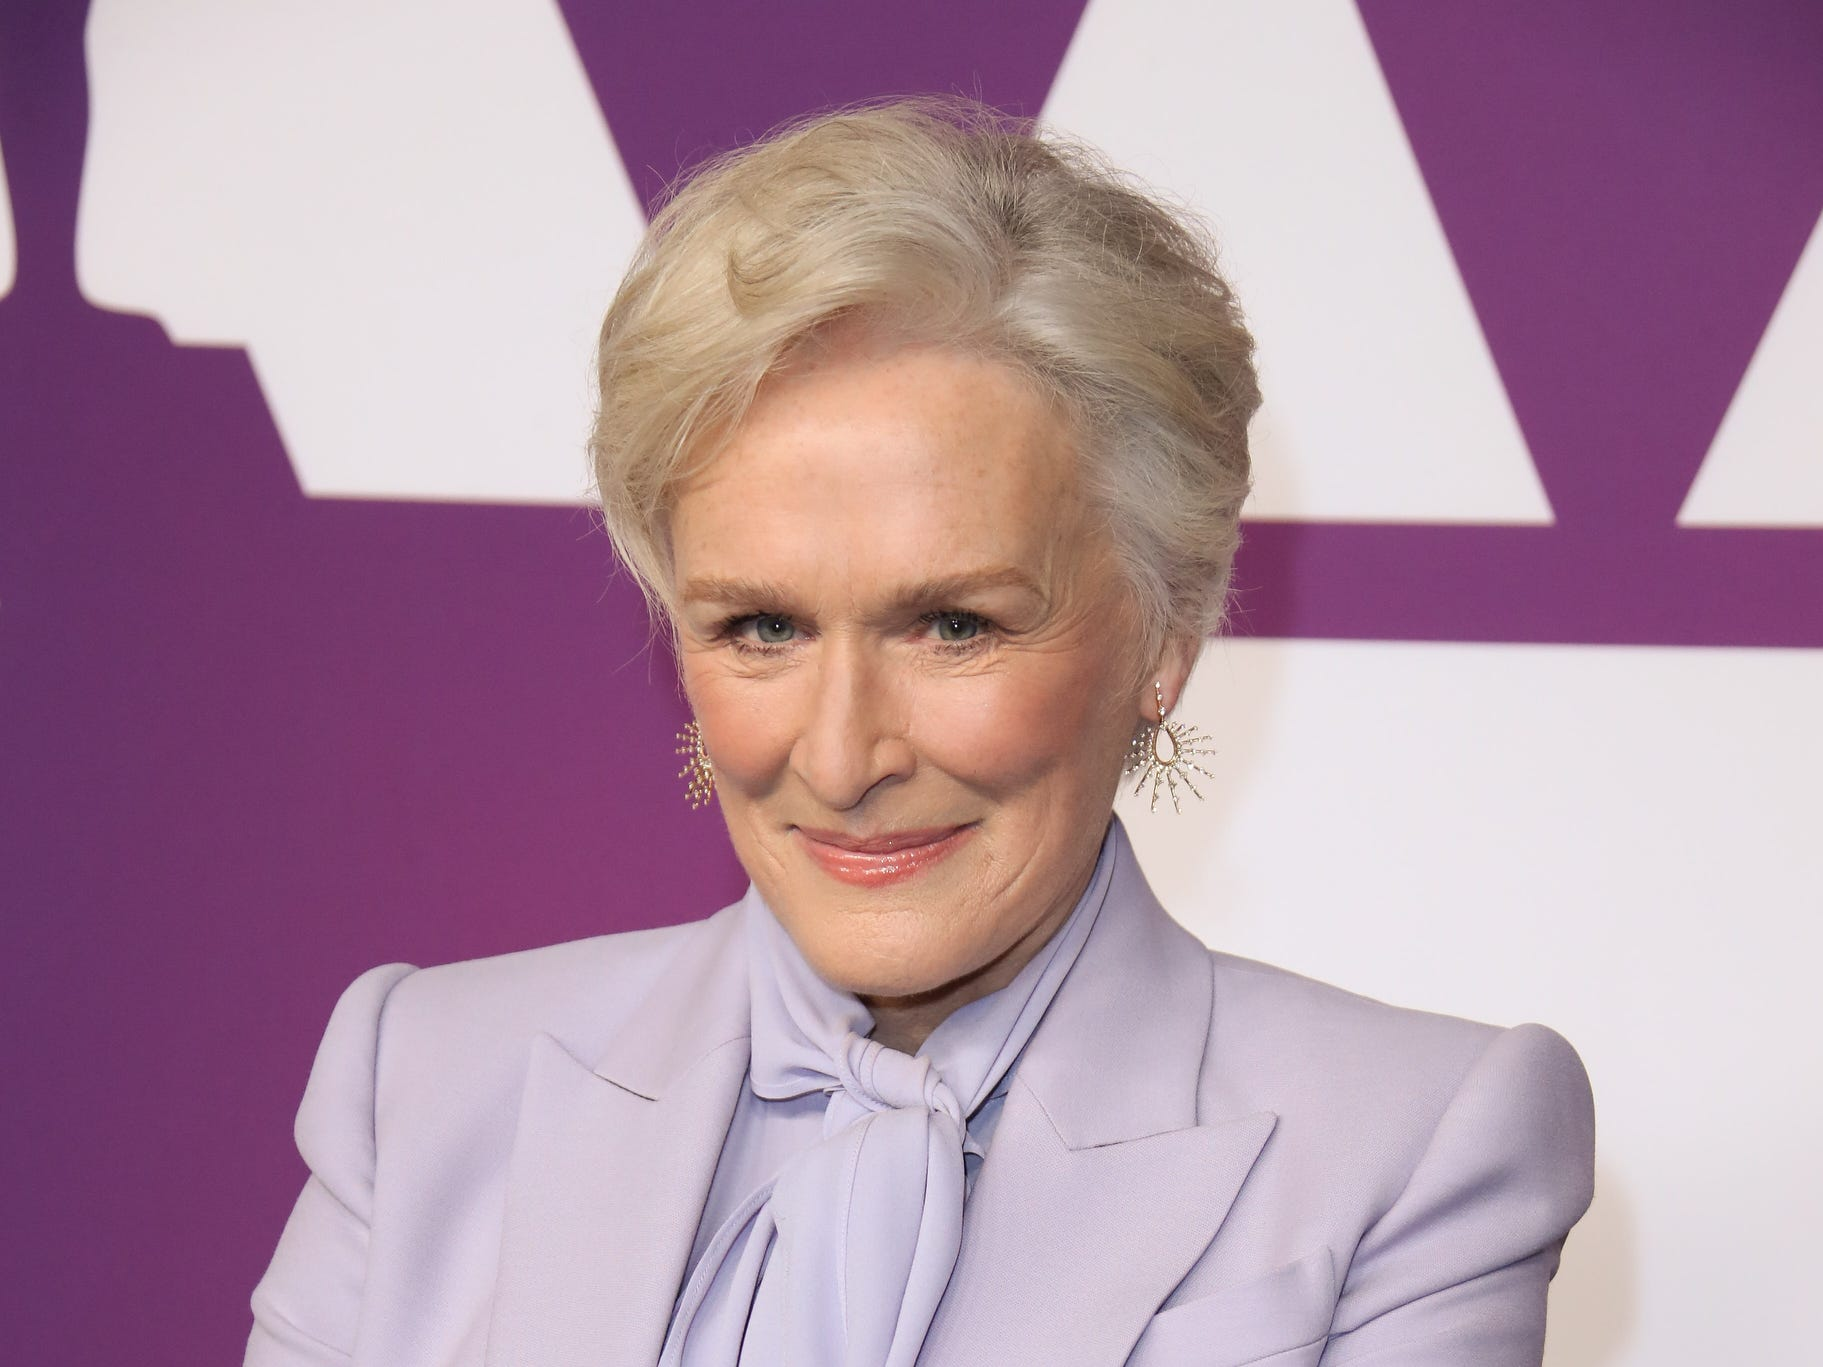 Glenn Close arrives at the 91st Oscar nominees luncheo,Feb. 4, 2019,  at the Beverly Hilton Hotel.